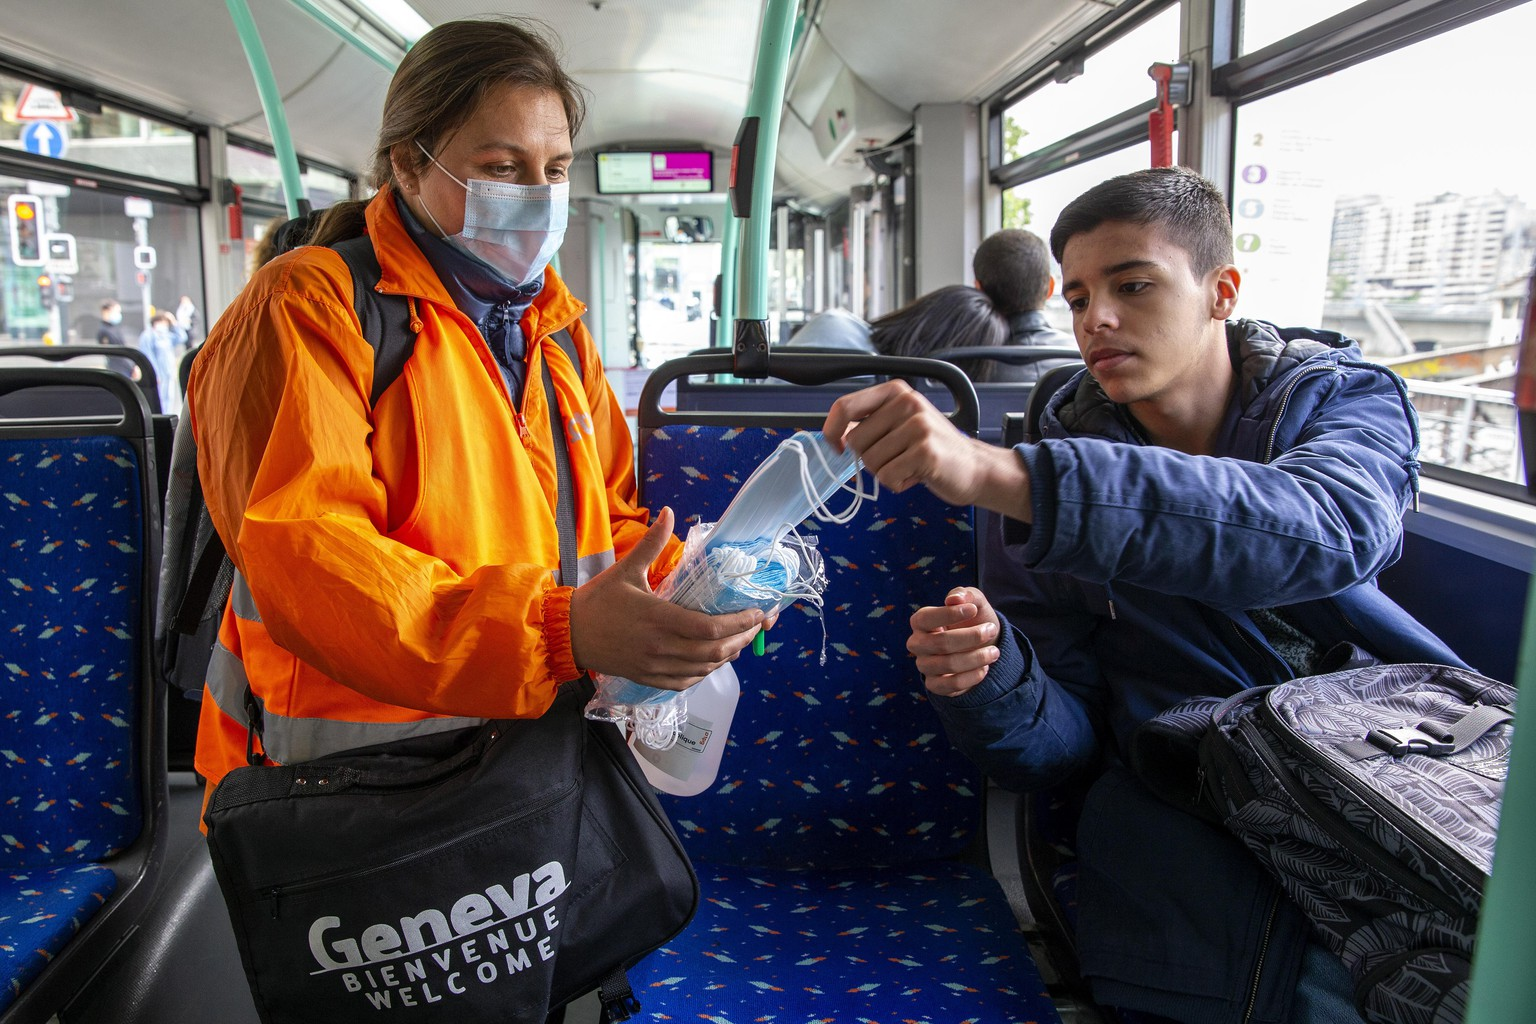 epa08417813 A member staff of the Transports publics genevois, TPG, (Geneva Public Transport), distributes protective face masks as a preventive mesure against the spread the coronavirus COVID-19 to passengers, in Geneva, Switzerland, 12 May 2020.  In Switzerland since 11 May, the Swiss authorities lifted second part of the lockdown. Classroom teaching at primary and lower secondary schools will again be permitted. Shops, markets, museums, libraries and restaurants reopen under strict compliance with precautionary measures as a precaution against the spread of the coronavirus COVID-19.  EPA/SALVATORE DI NOLFI